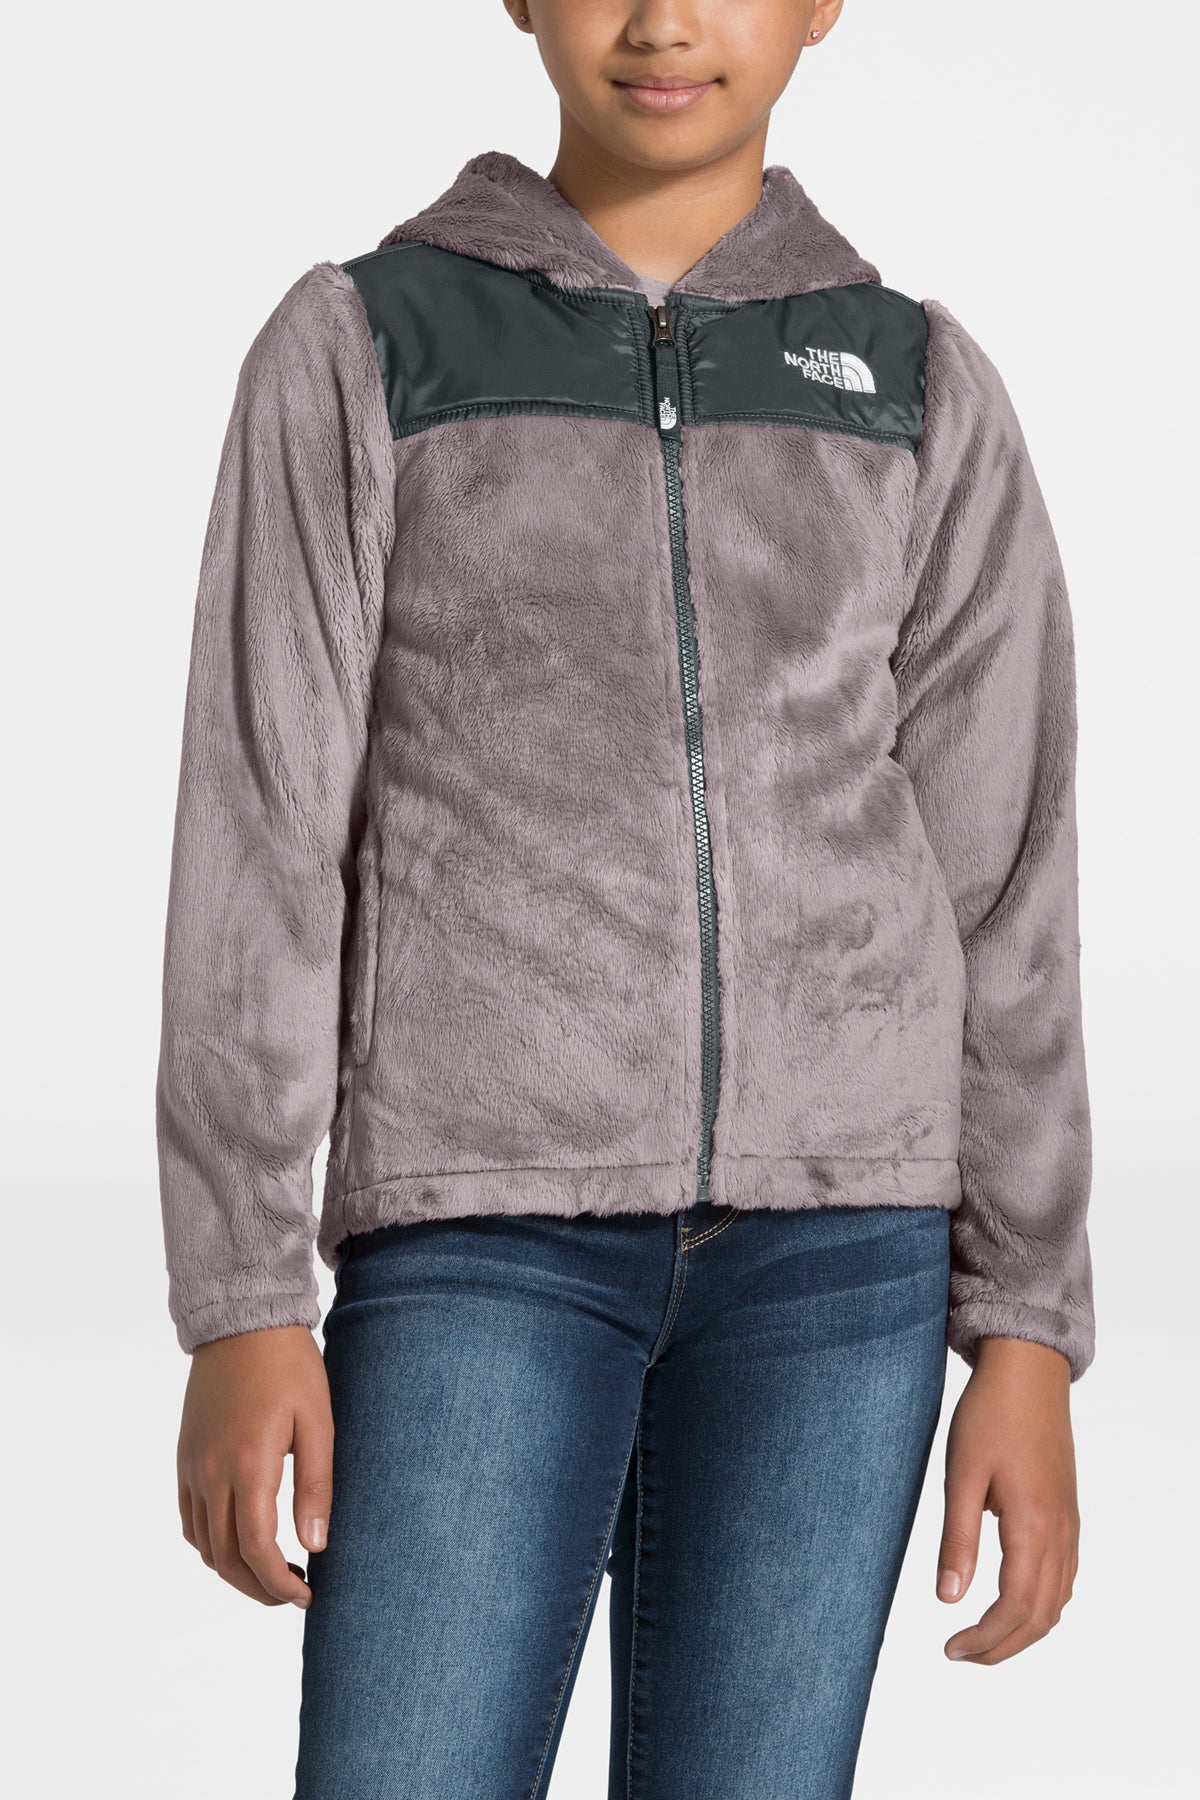 The North Face Girls Oso Hoodie - Ashen Purple